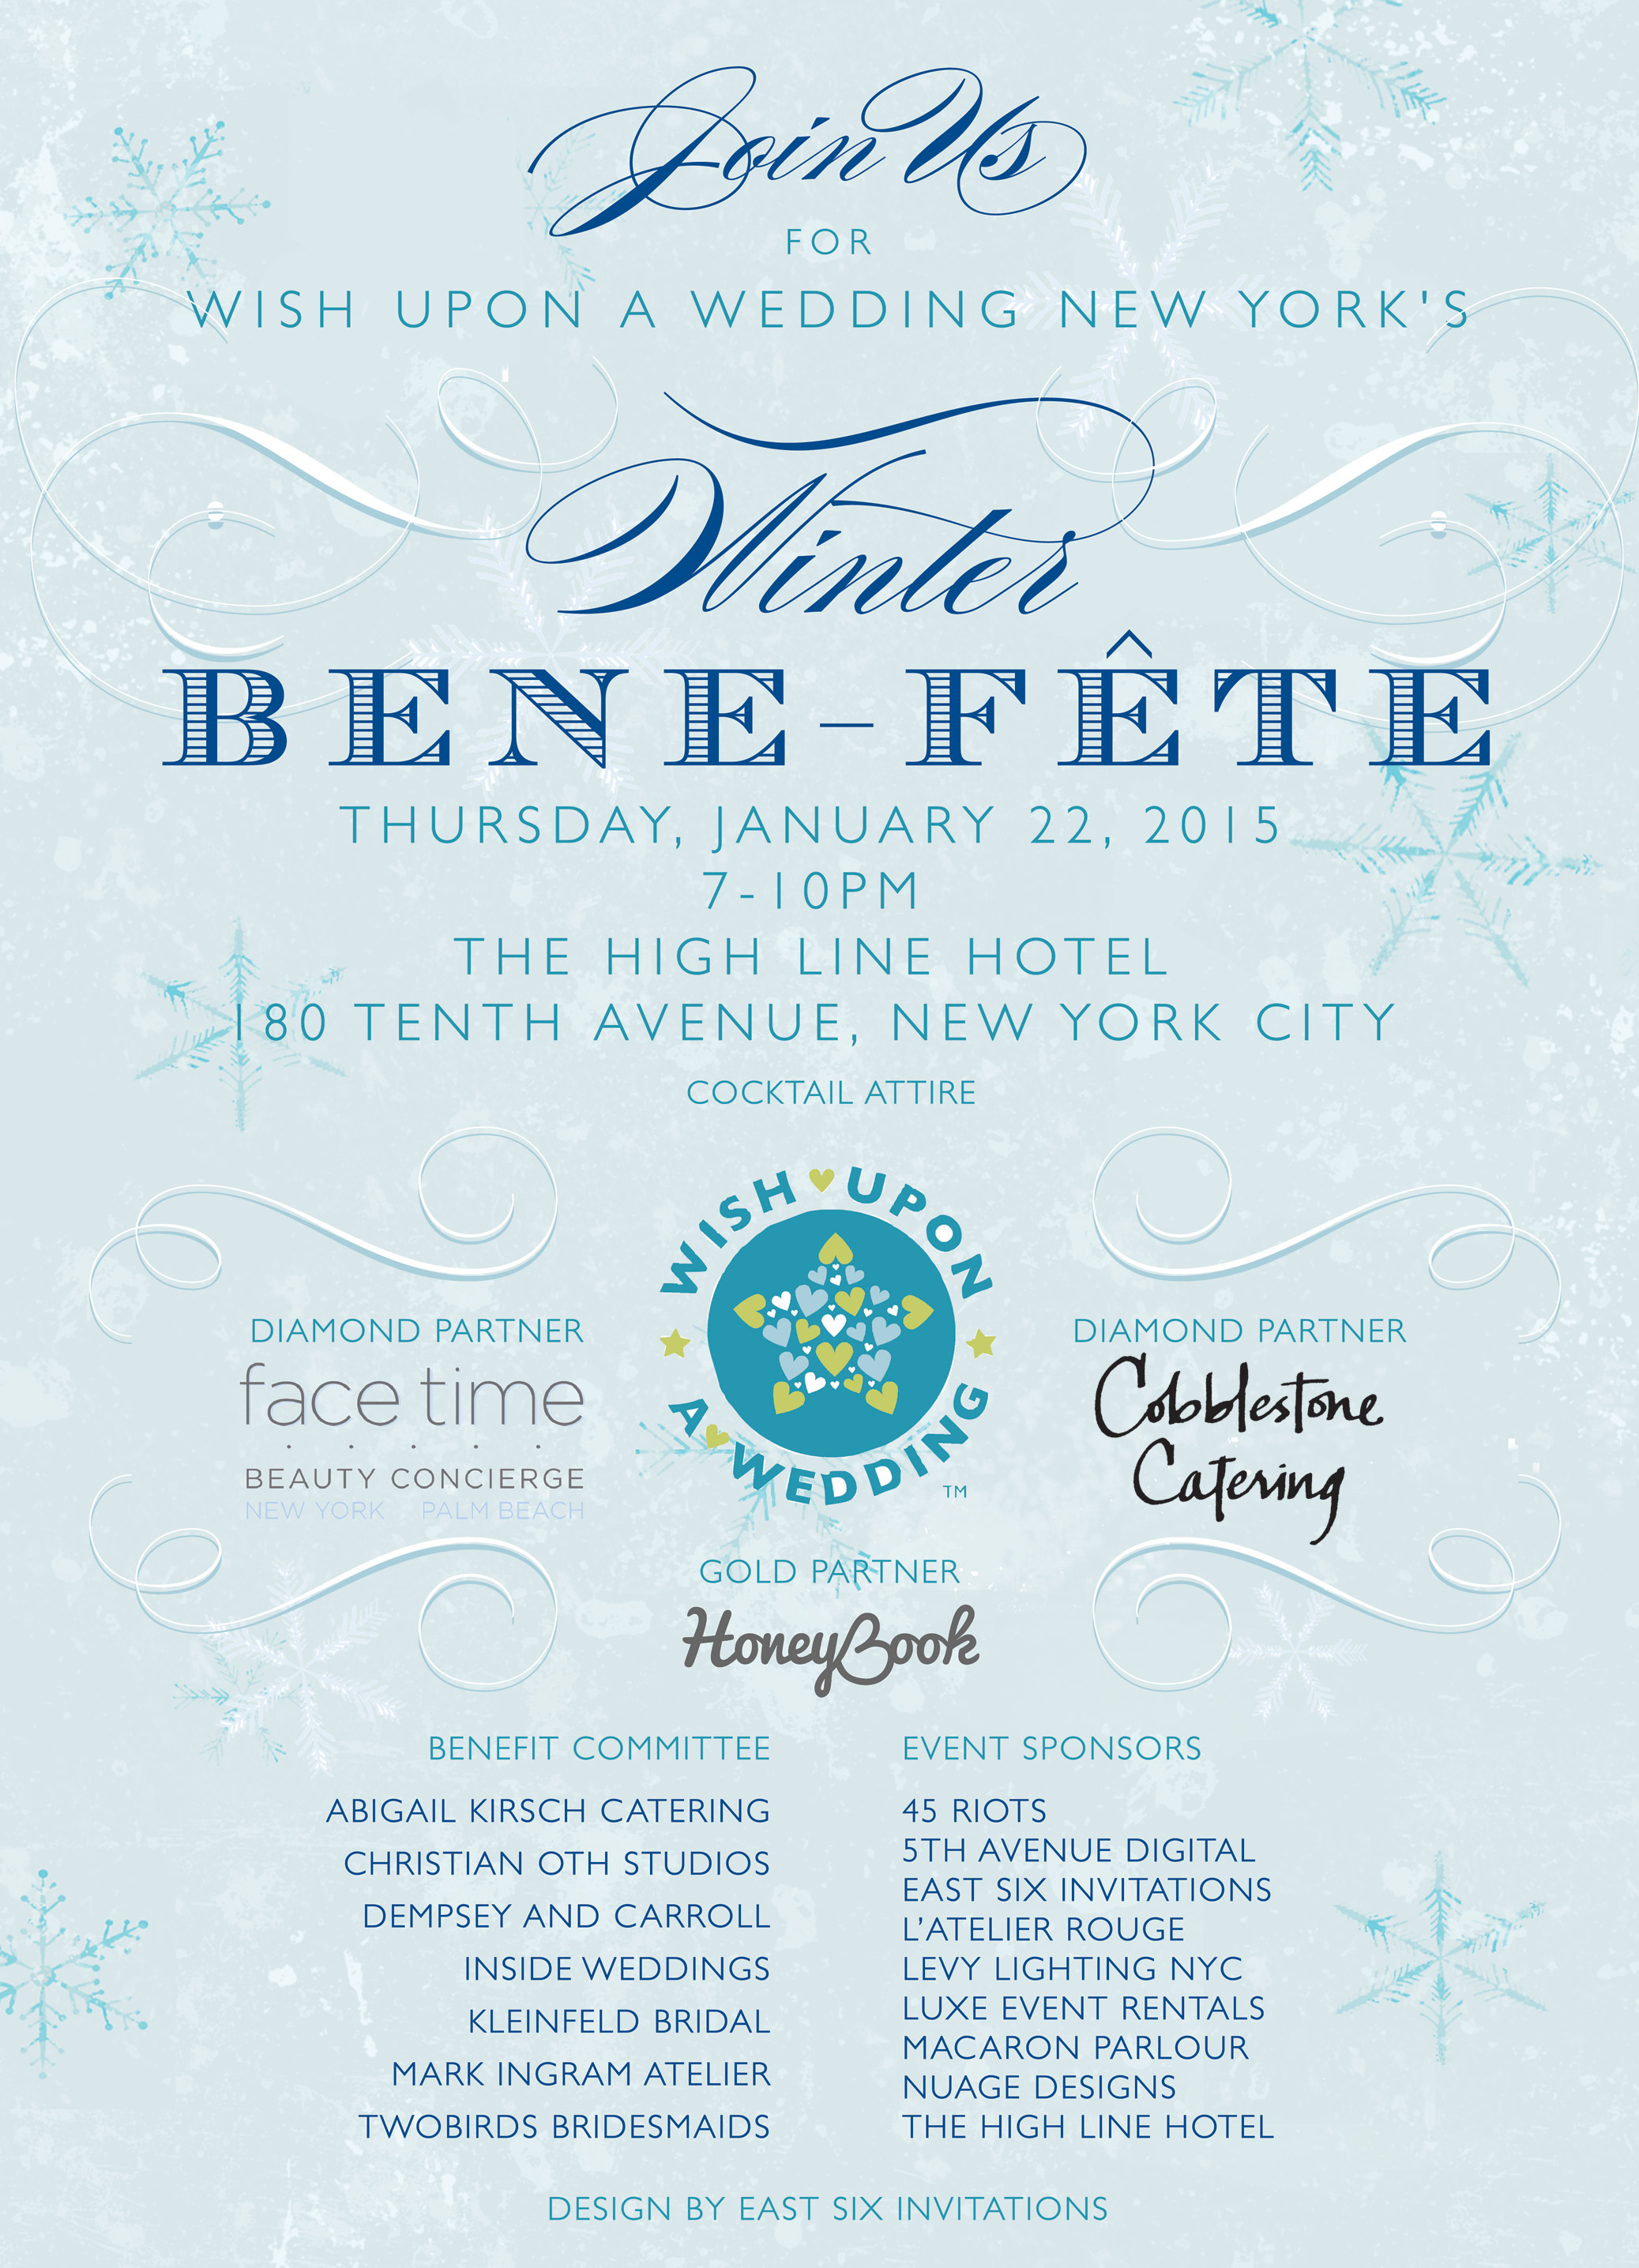 Wish Upon a Wedding Winter Bene-Fete - January 22, 2015 at The High Line Hotel